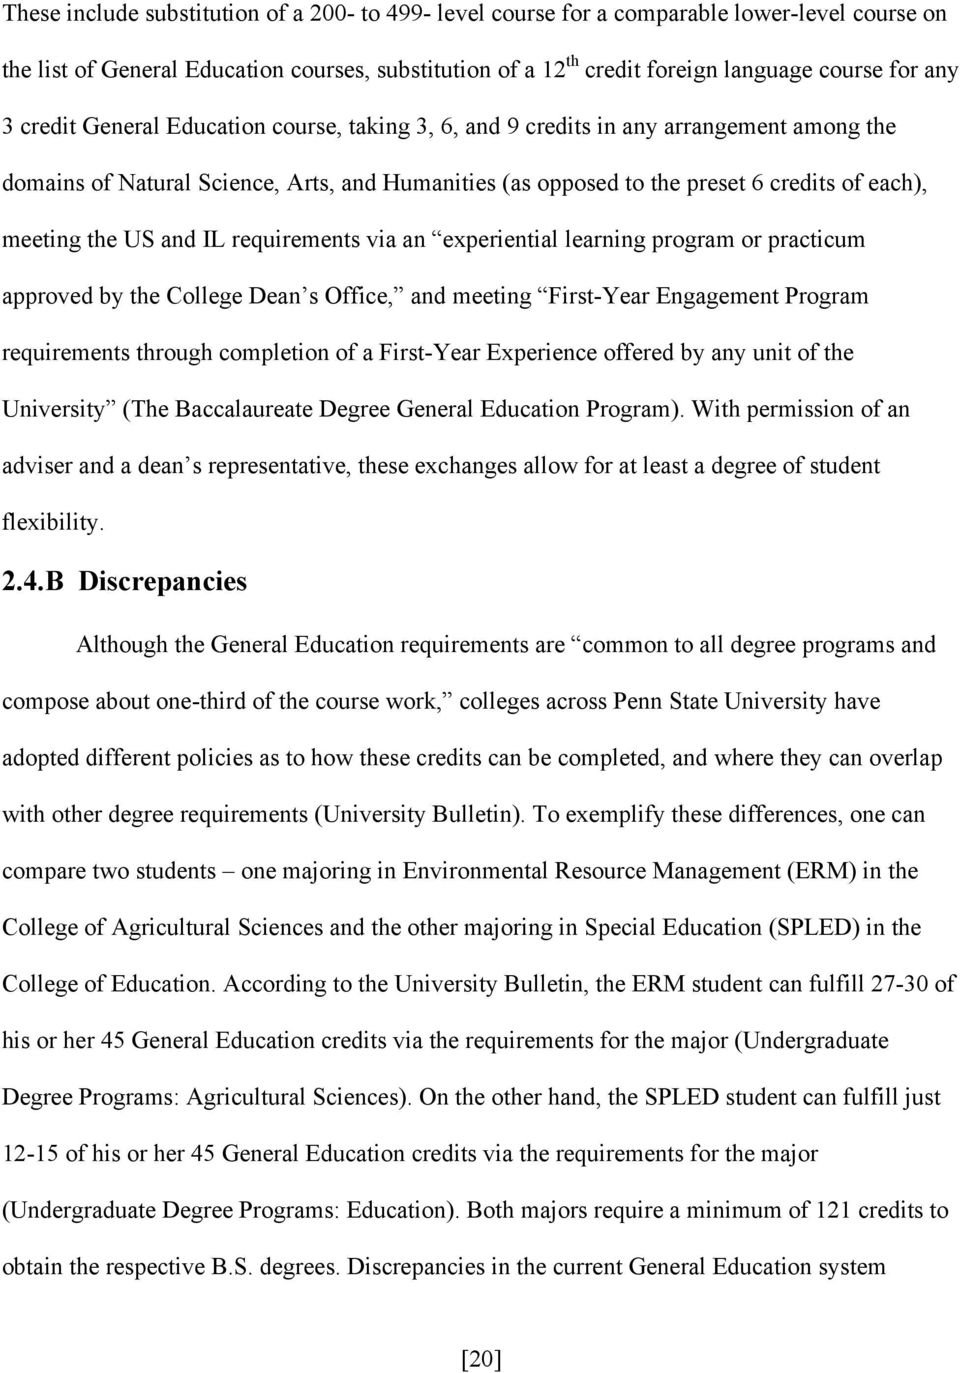 US and IL requirements via an experiential learning program or practicum approved by the College Dean s Office, and meeting First-Year Engagement Program requirements through completion of a